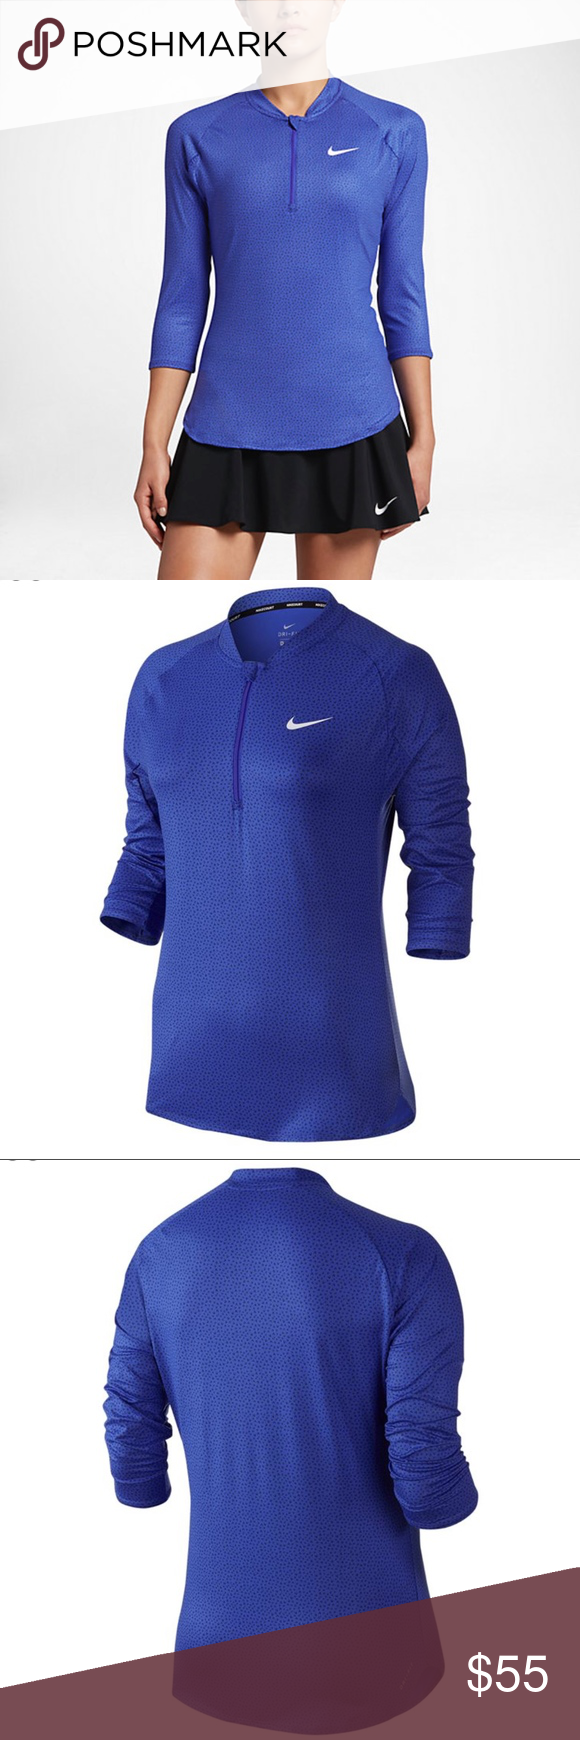 Nike womenus sleeve drifit tennis top nwt tennis tops and tennis